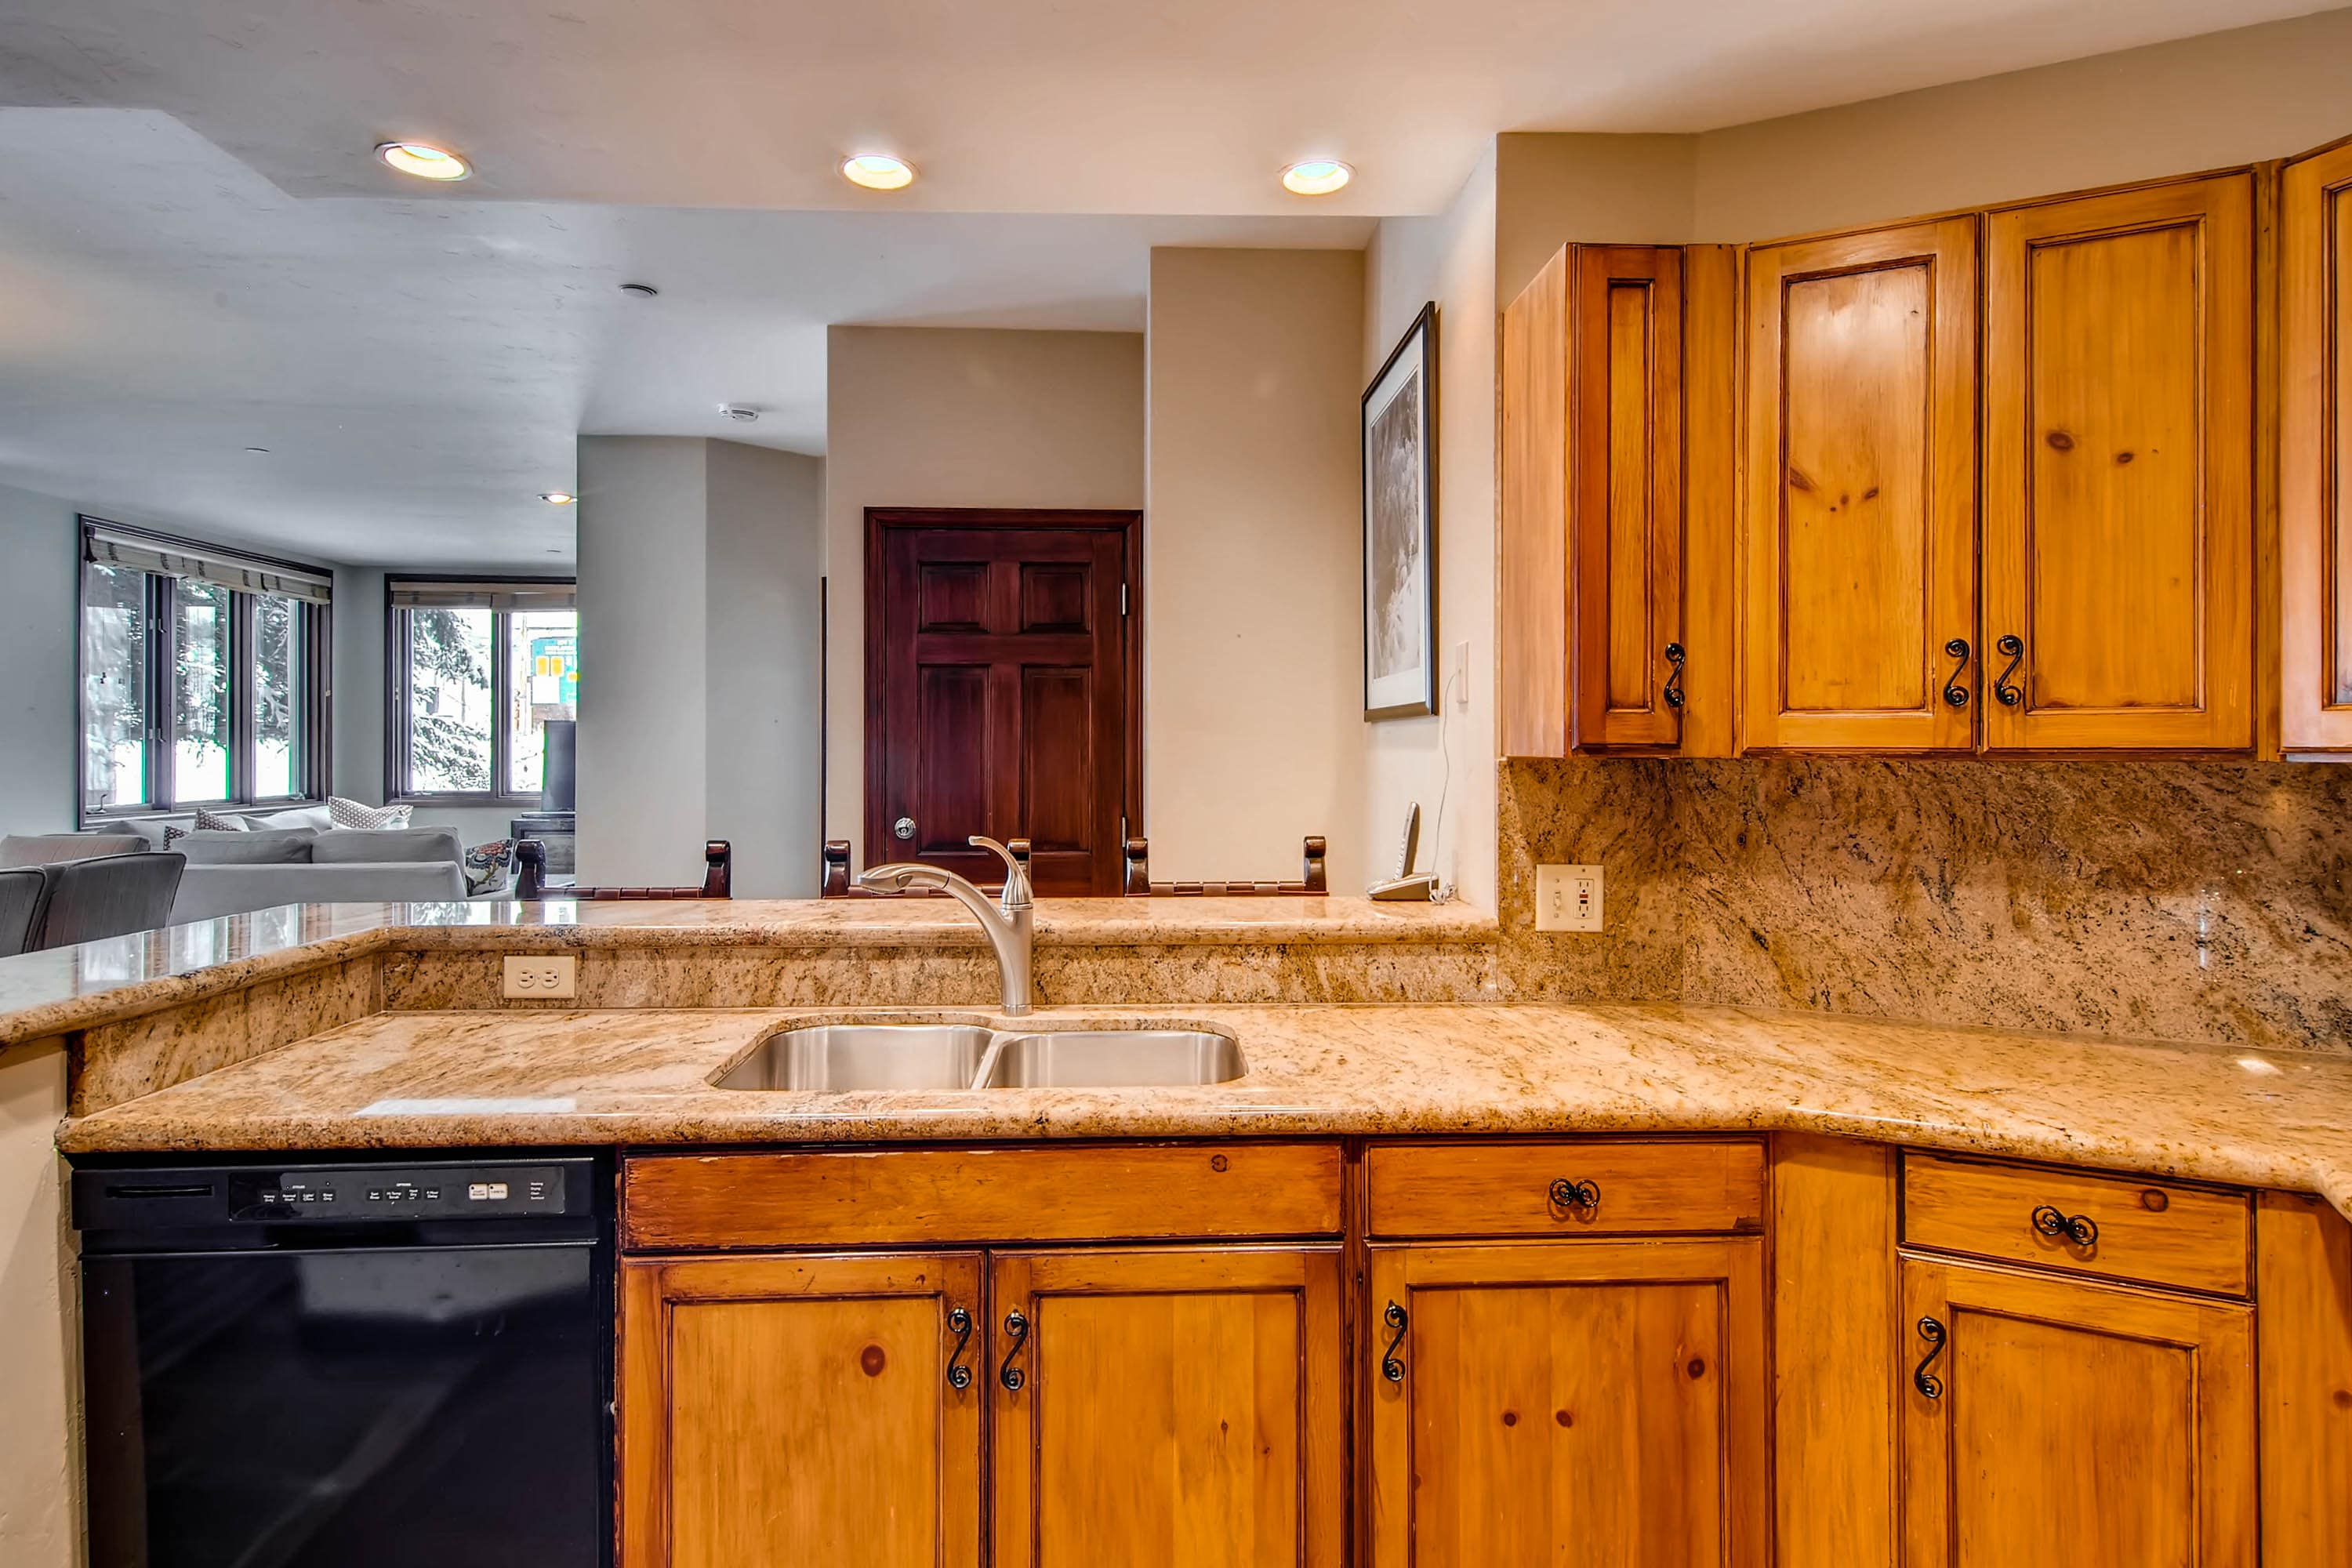 Property Image 2 - Large Comfortable Condo in Beaver Creek with Ski Access